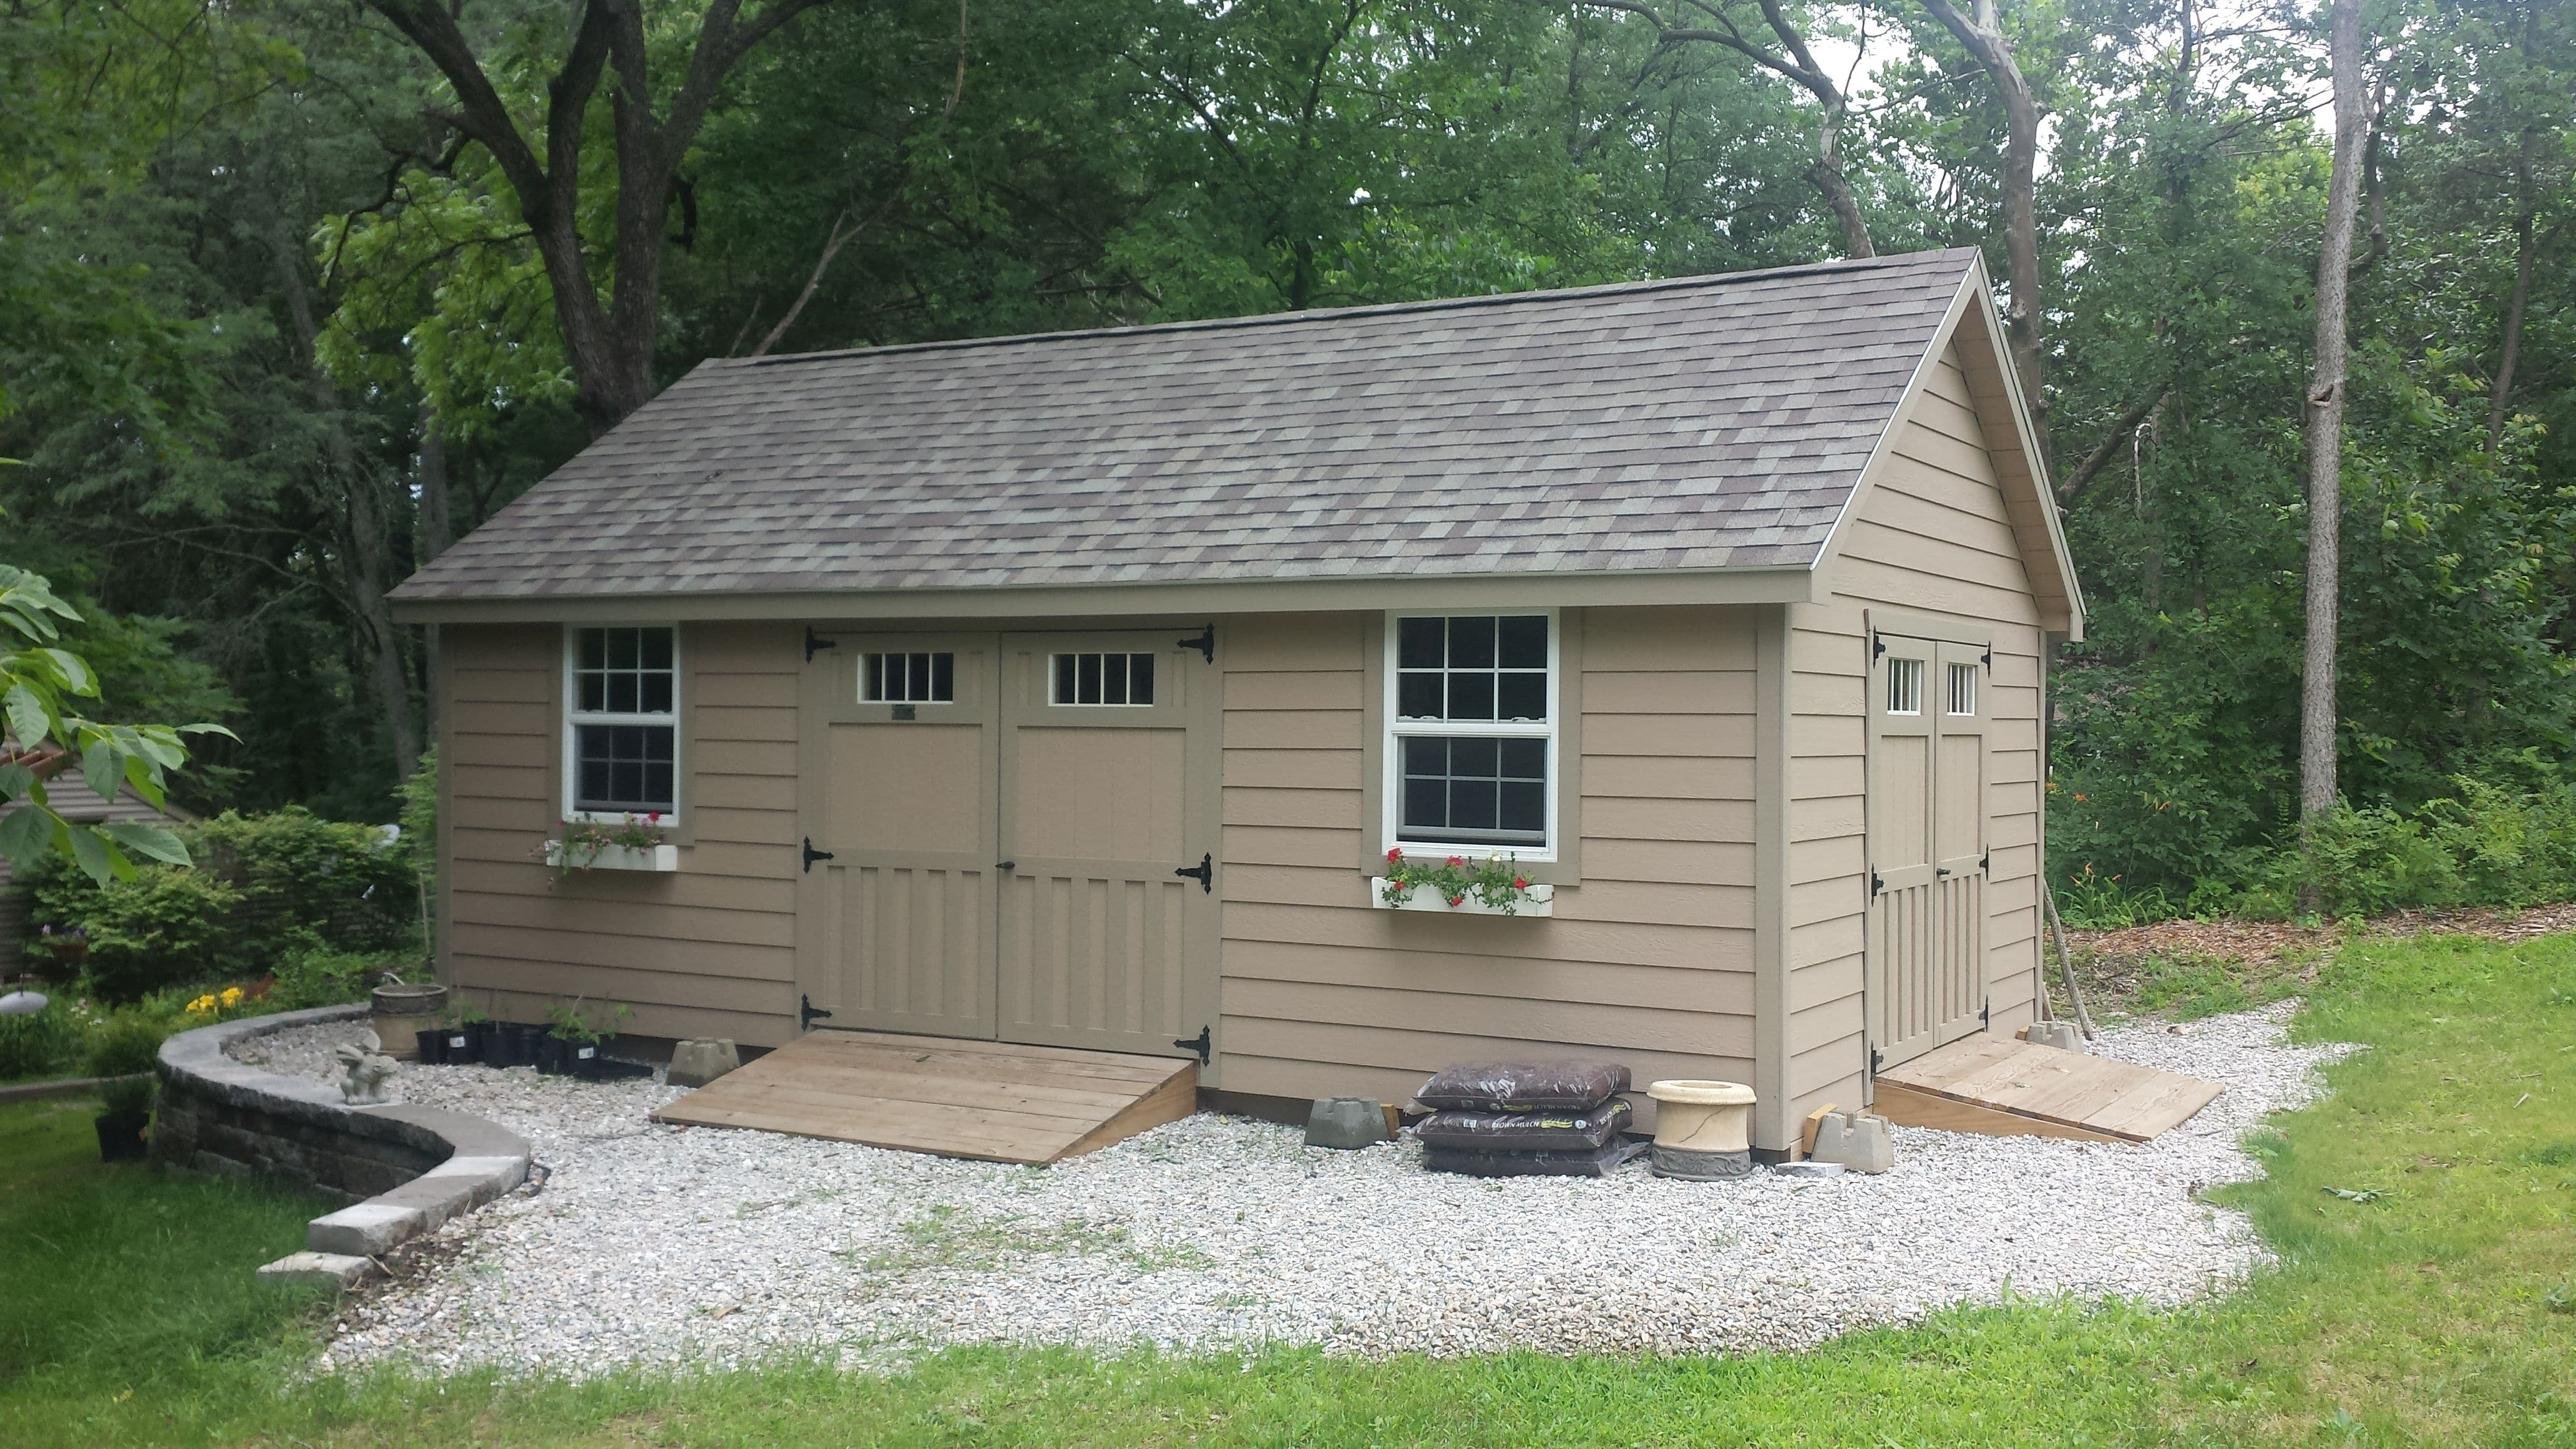 gravel foundation sheds pinterest pin for garden pad ramps shed